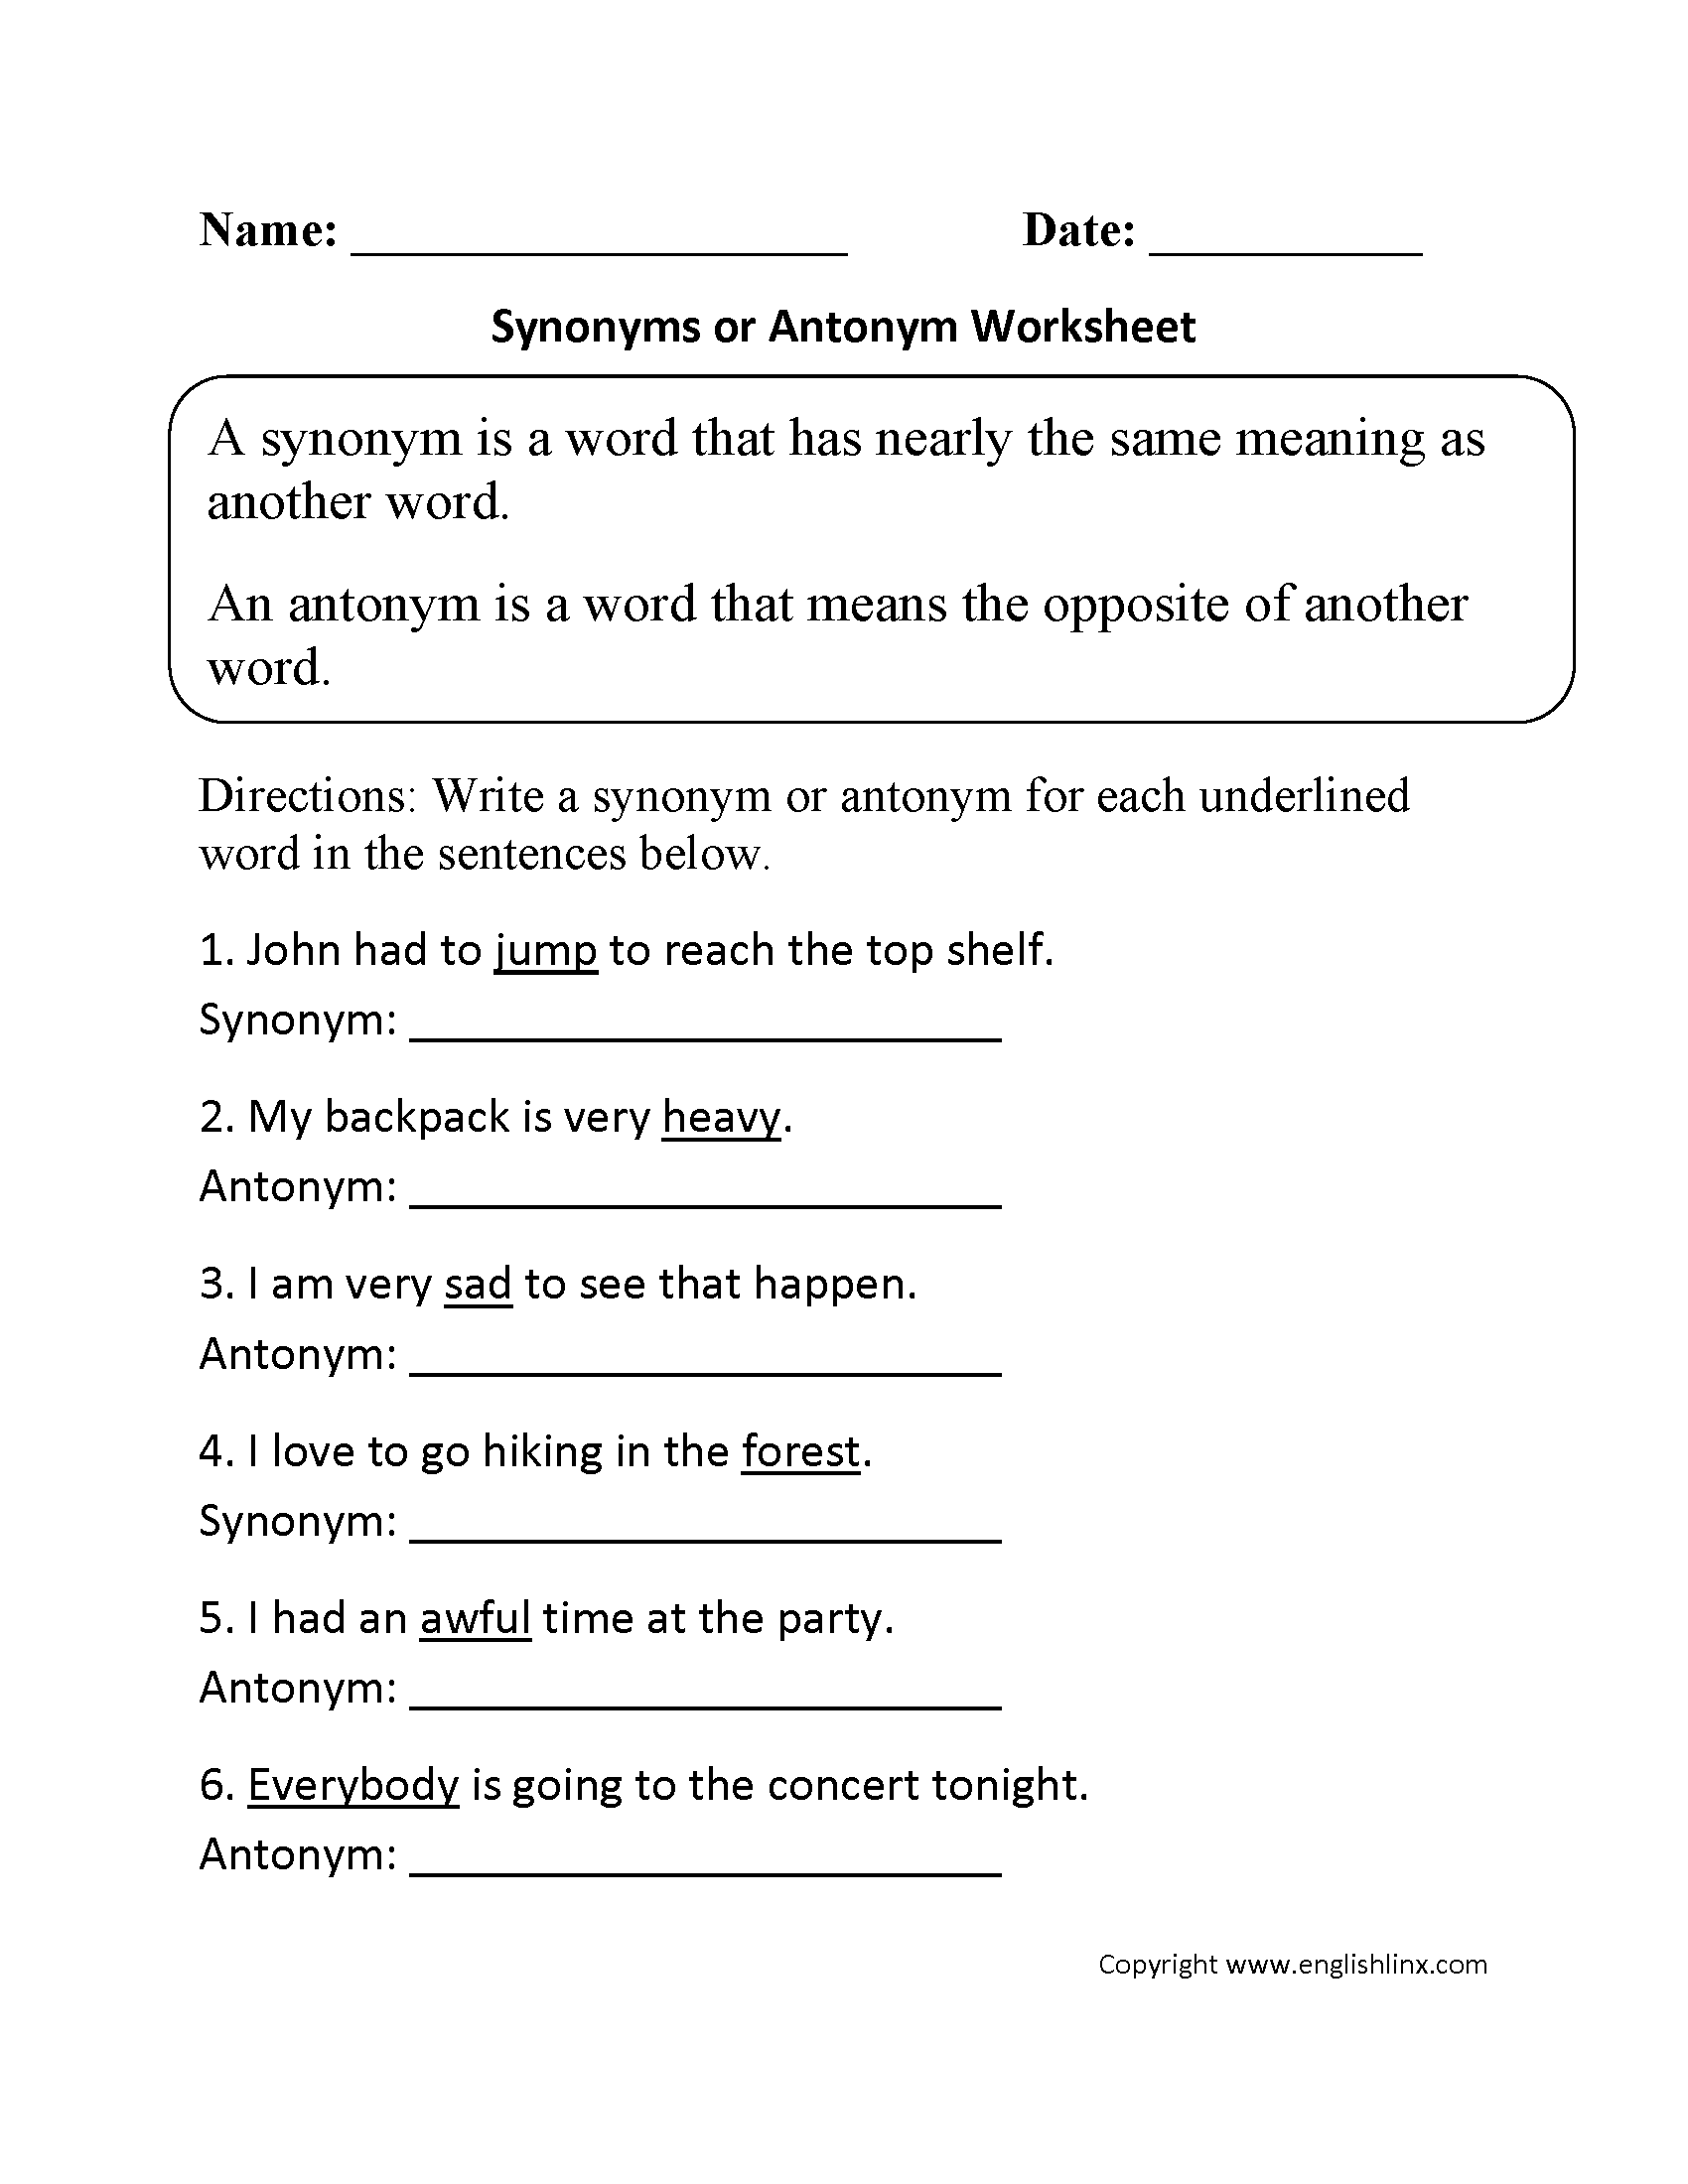 Worksheet Synonyms Grade 5